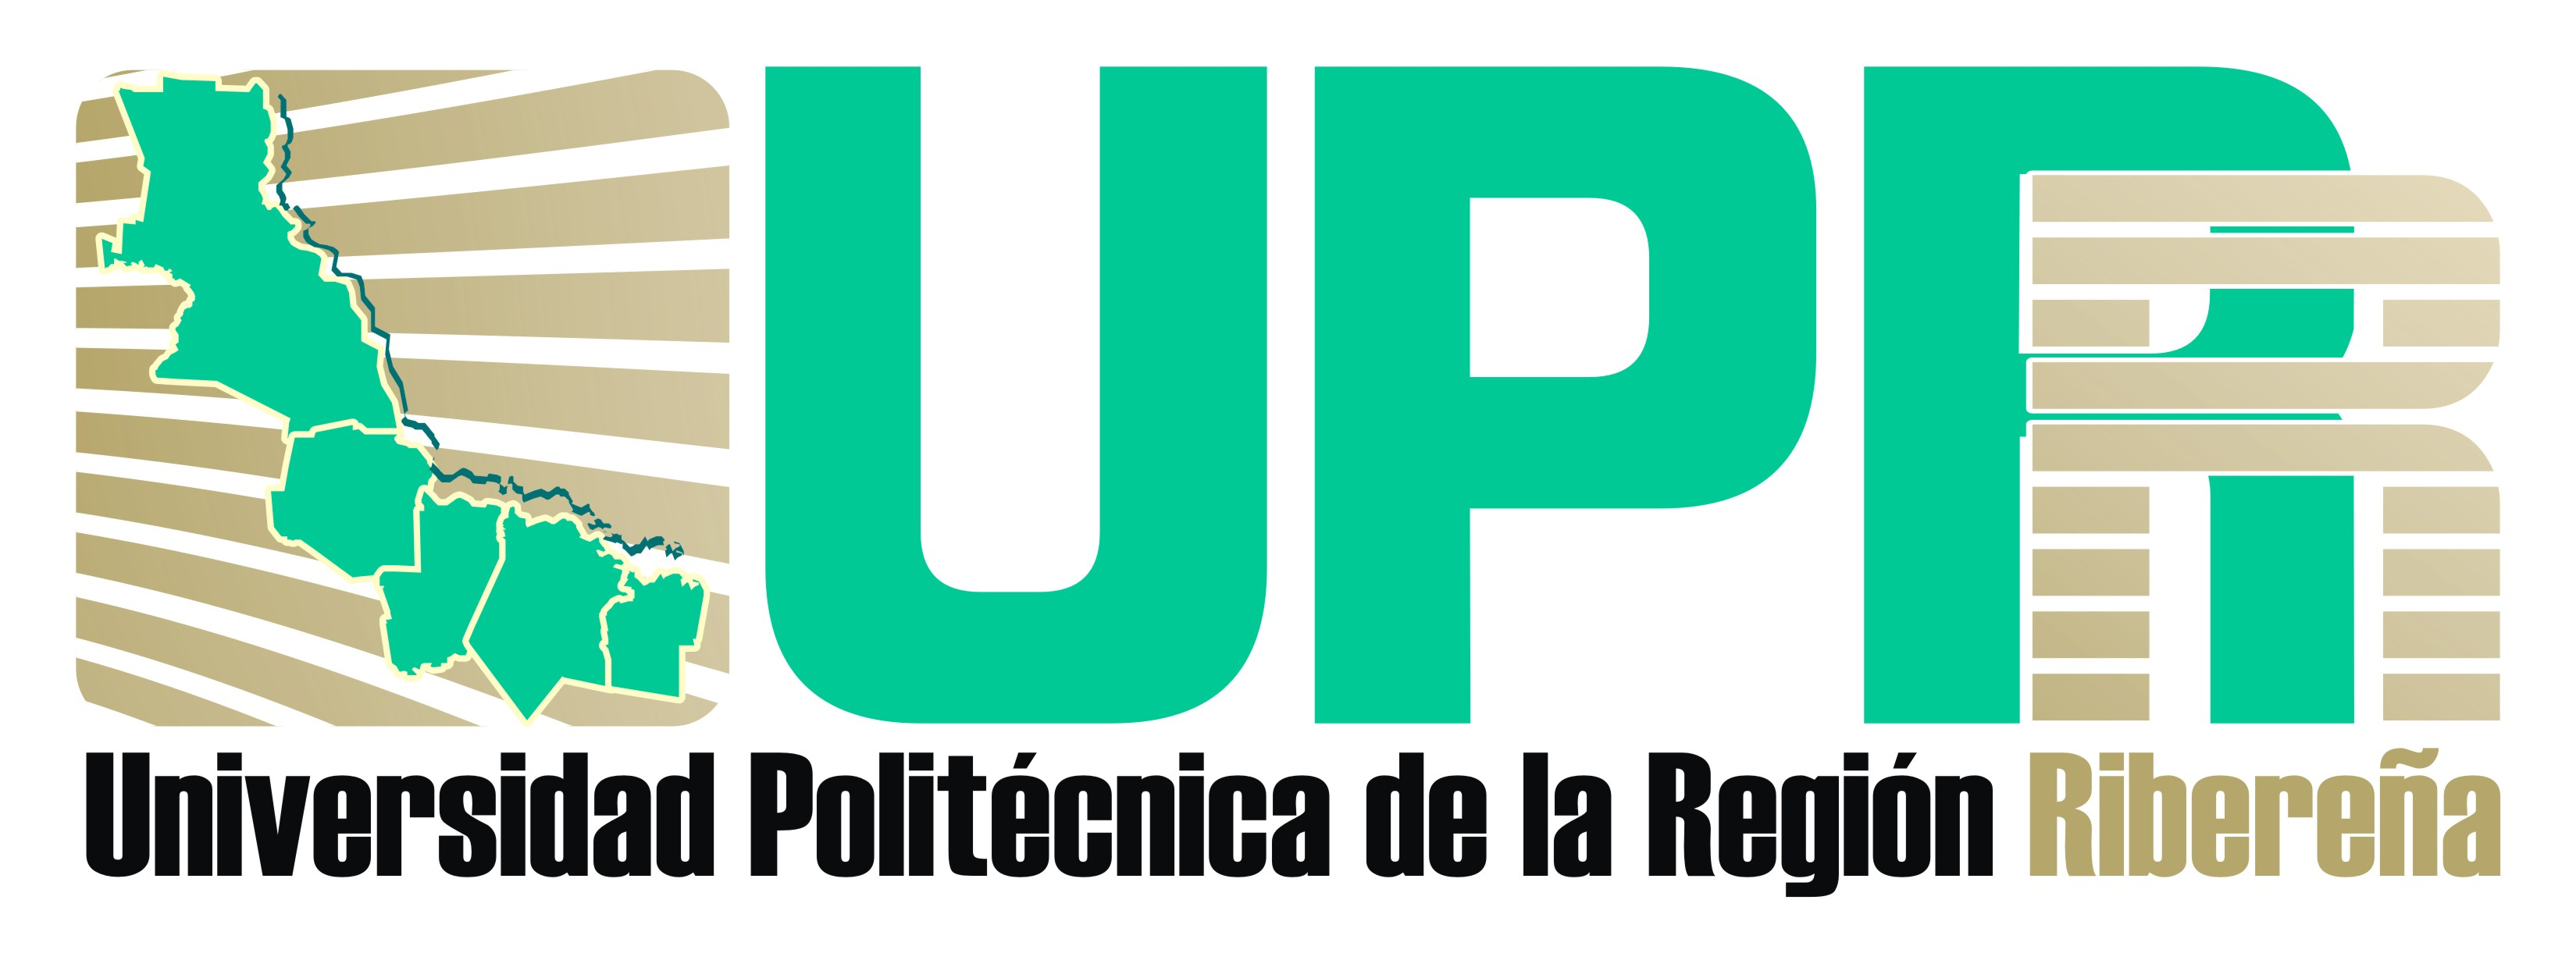 Universidad Regional del Norte Logo photo - 1